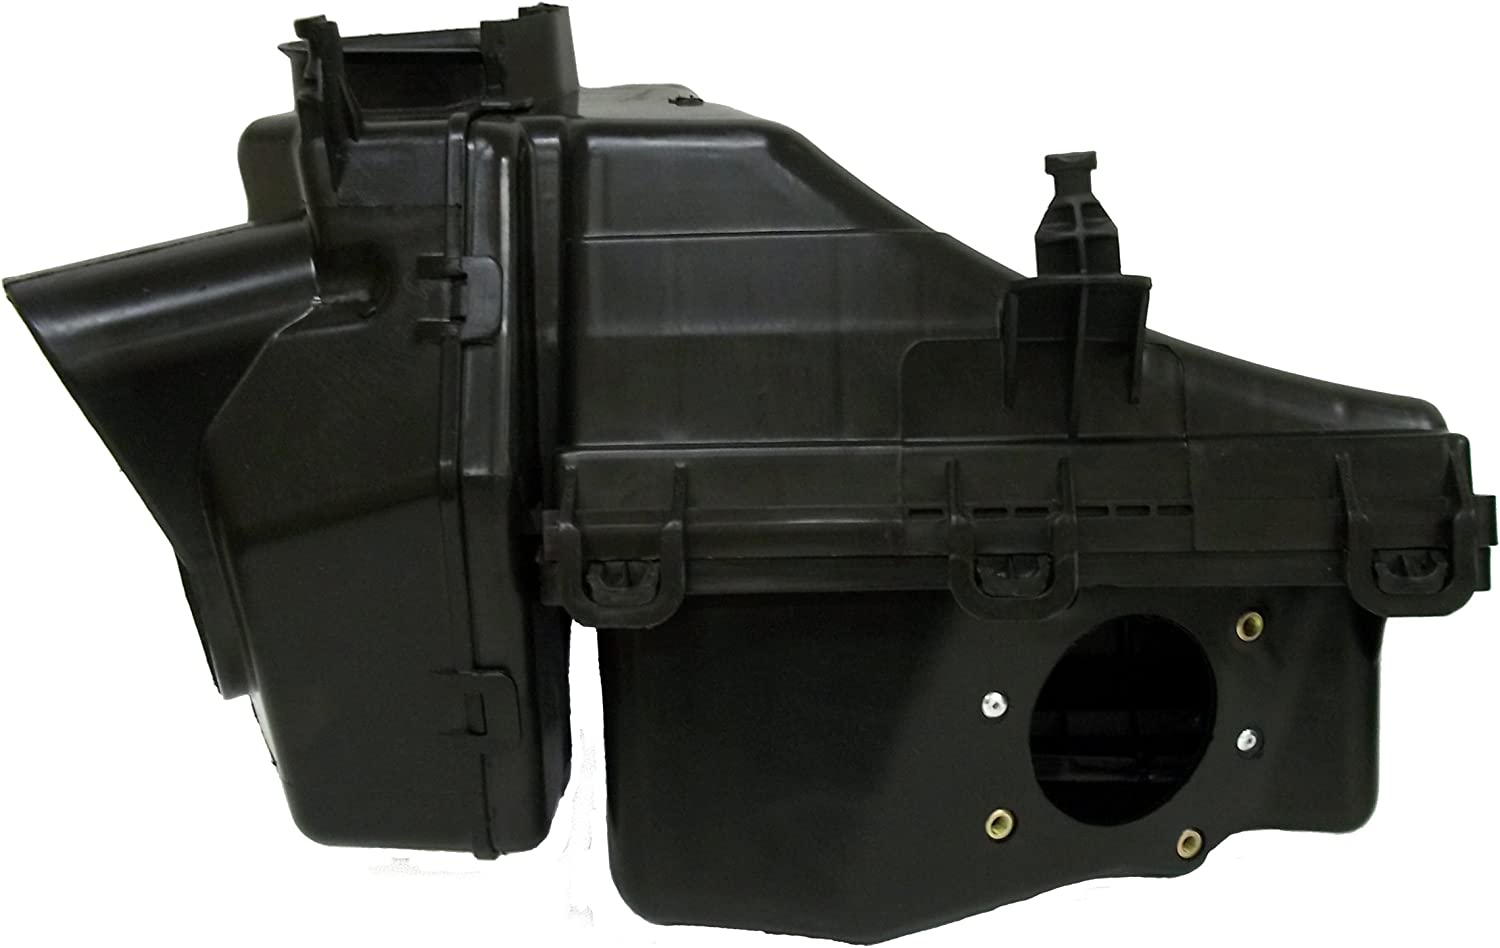 Air Cleaner Filter Box for 2002-2009 Nissan Altima Quest Maxima fits 16500-8J010